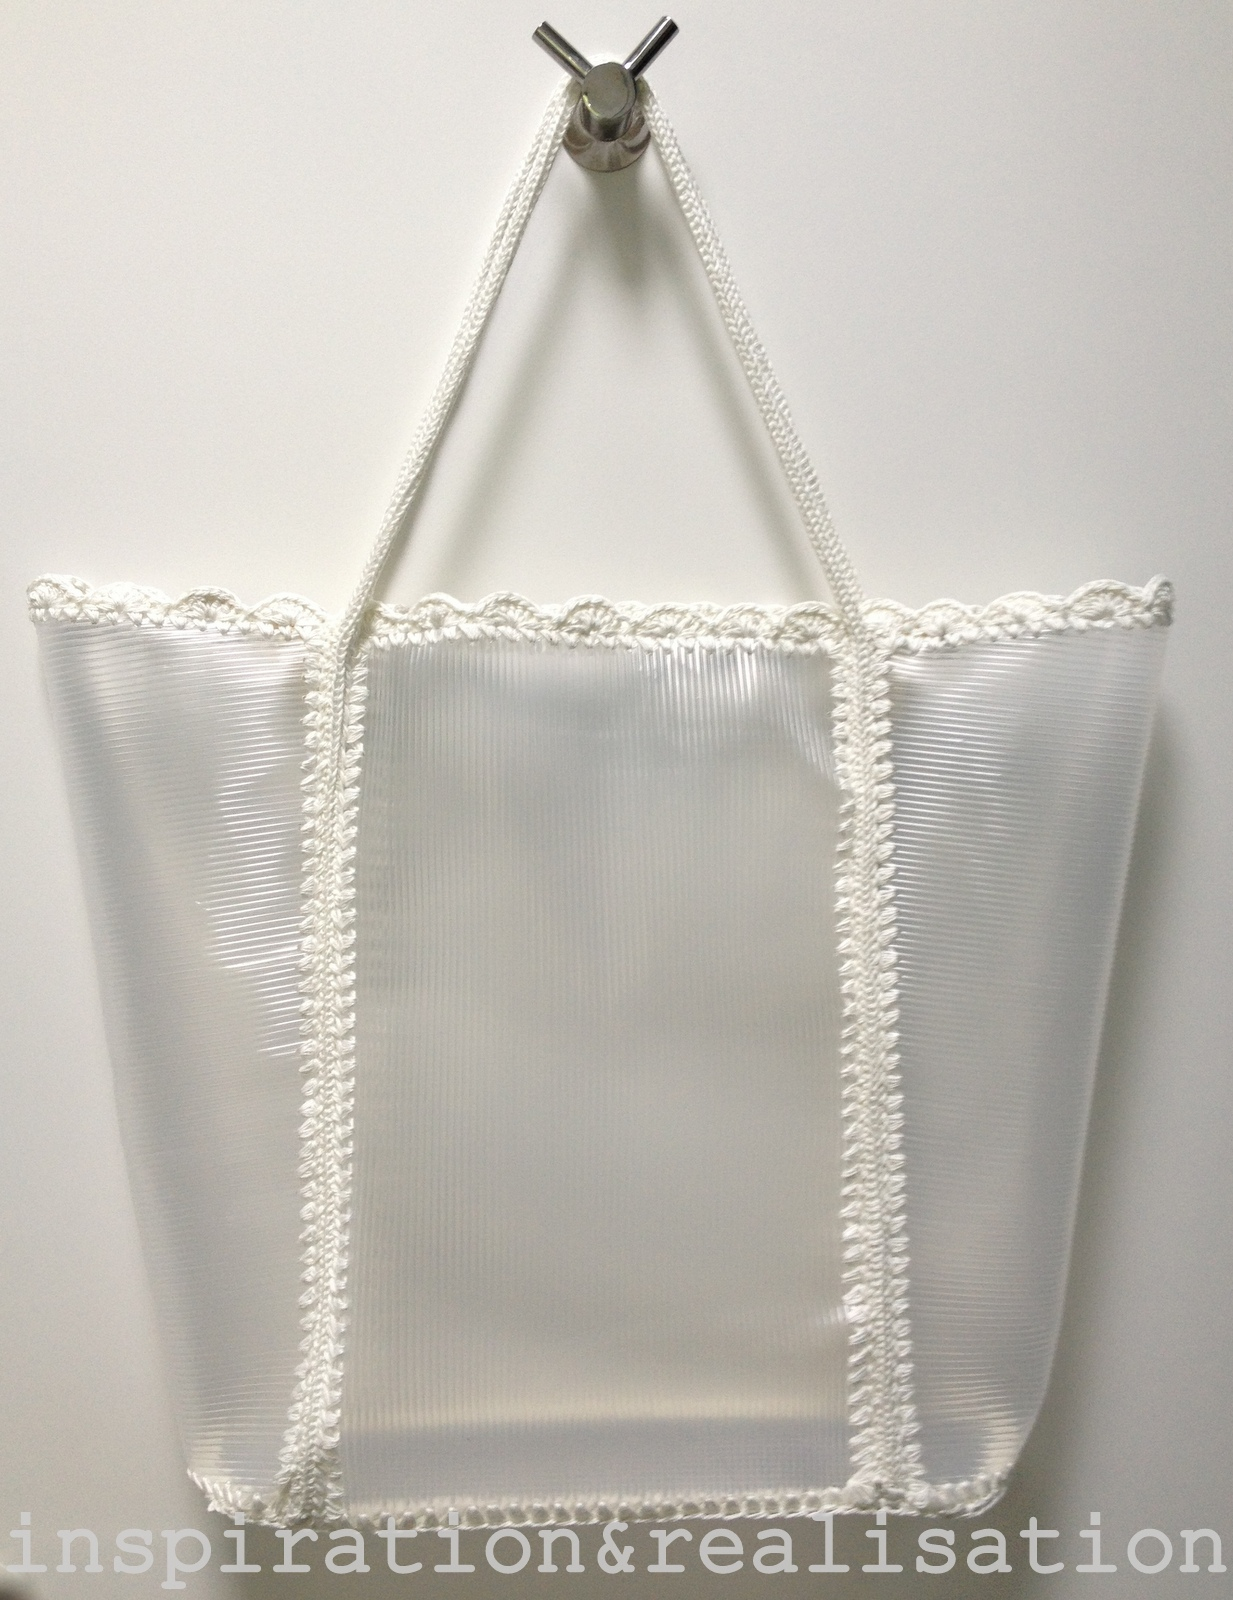 DIY Transparent Beach Tote Bag Tutorial